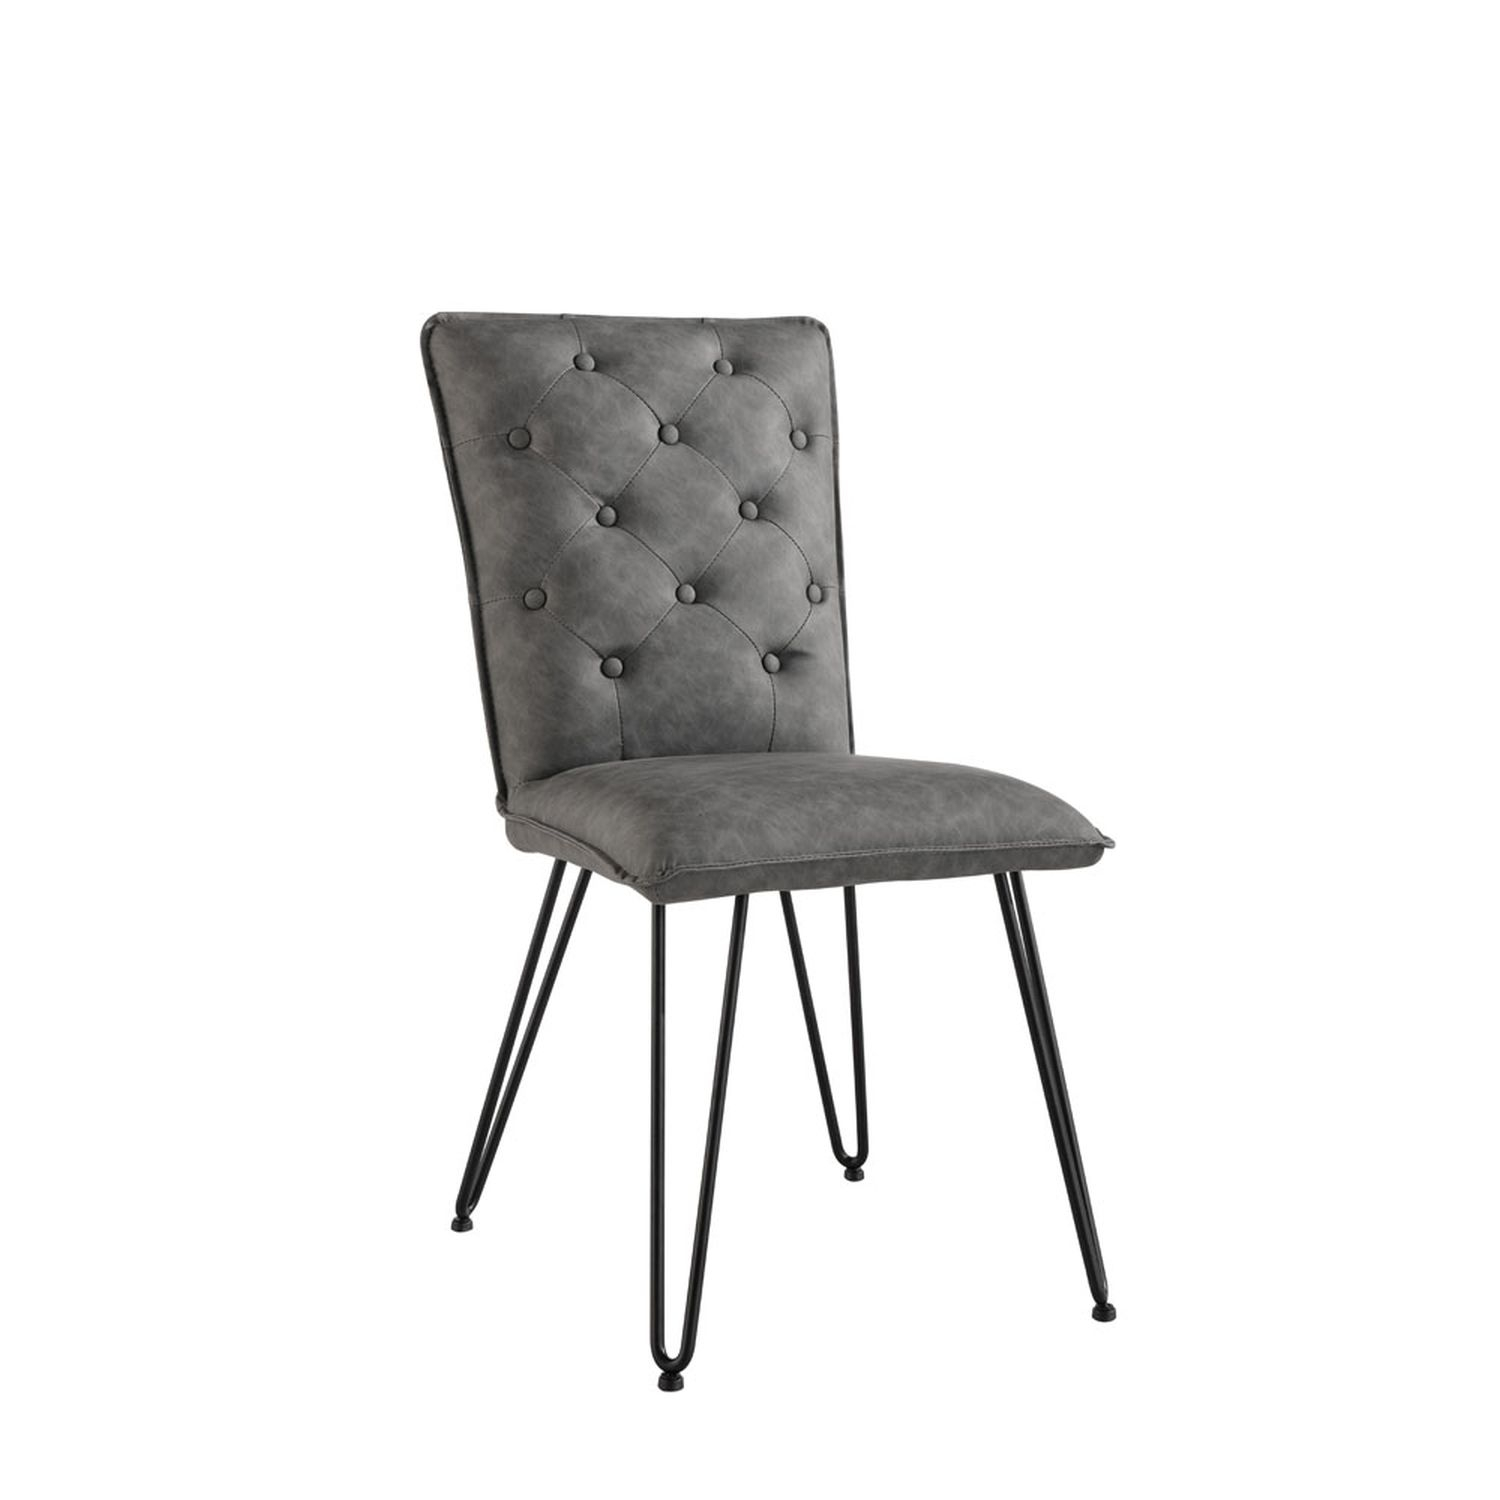 Image of Casa Pair Of Studded Dining Chairs, Grey